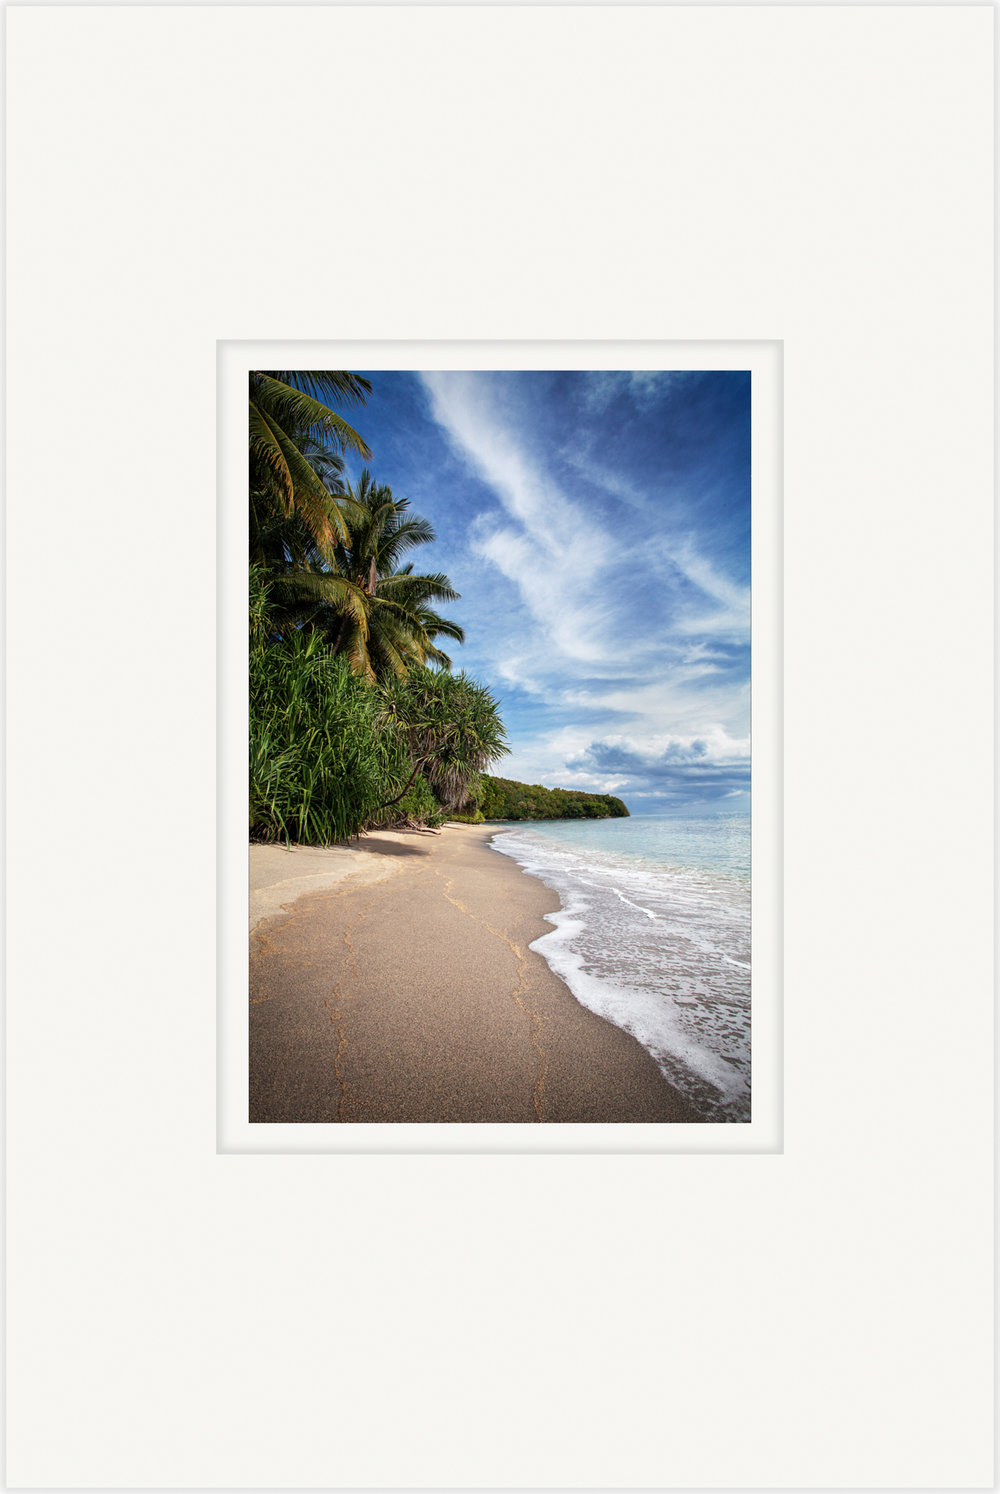 Tropic Cross 10cm x 15cm Photo Paper Limited Edition of 99 IDR 249,000